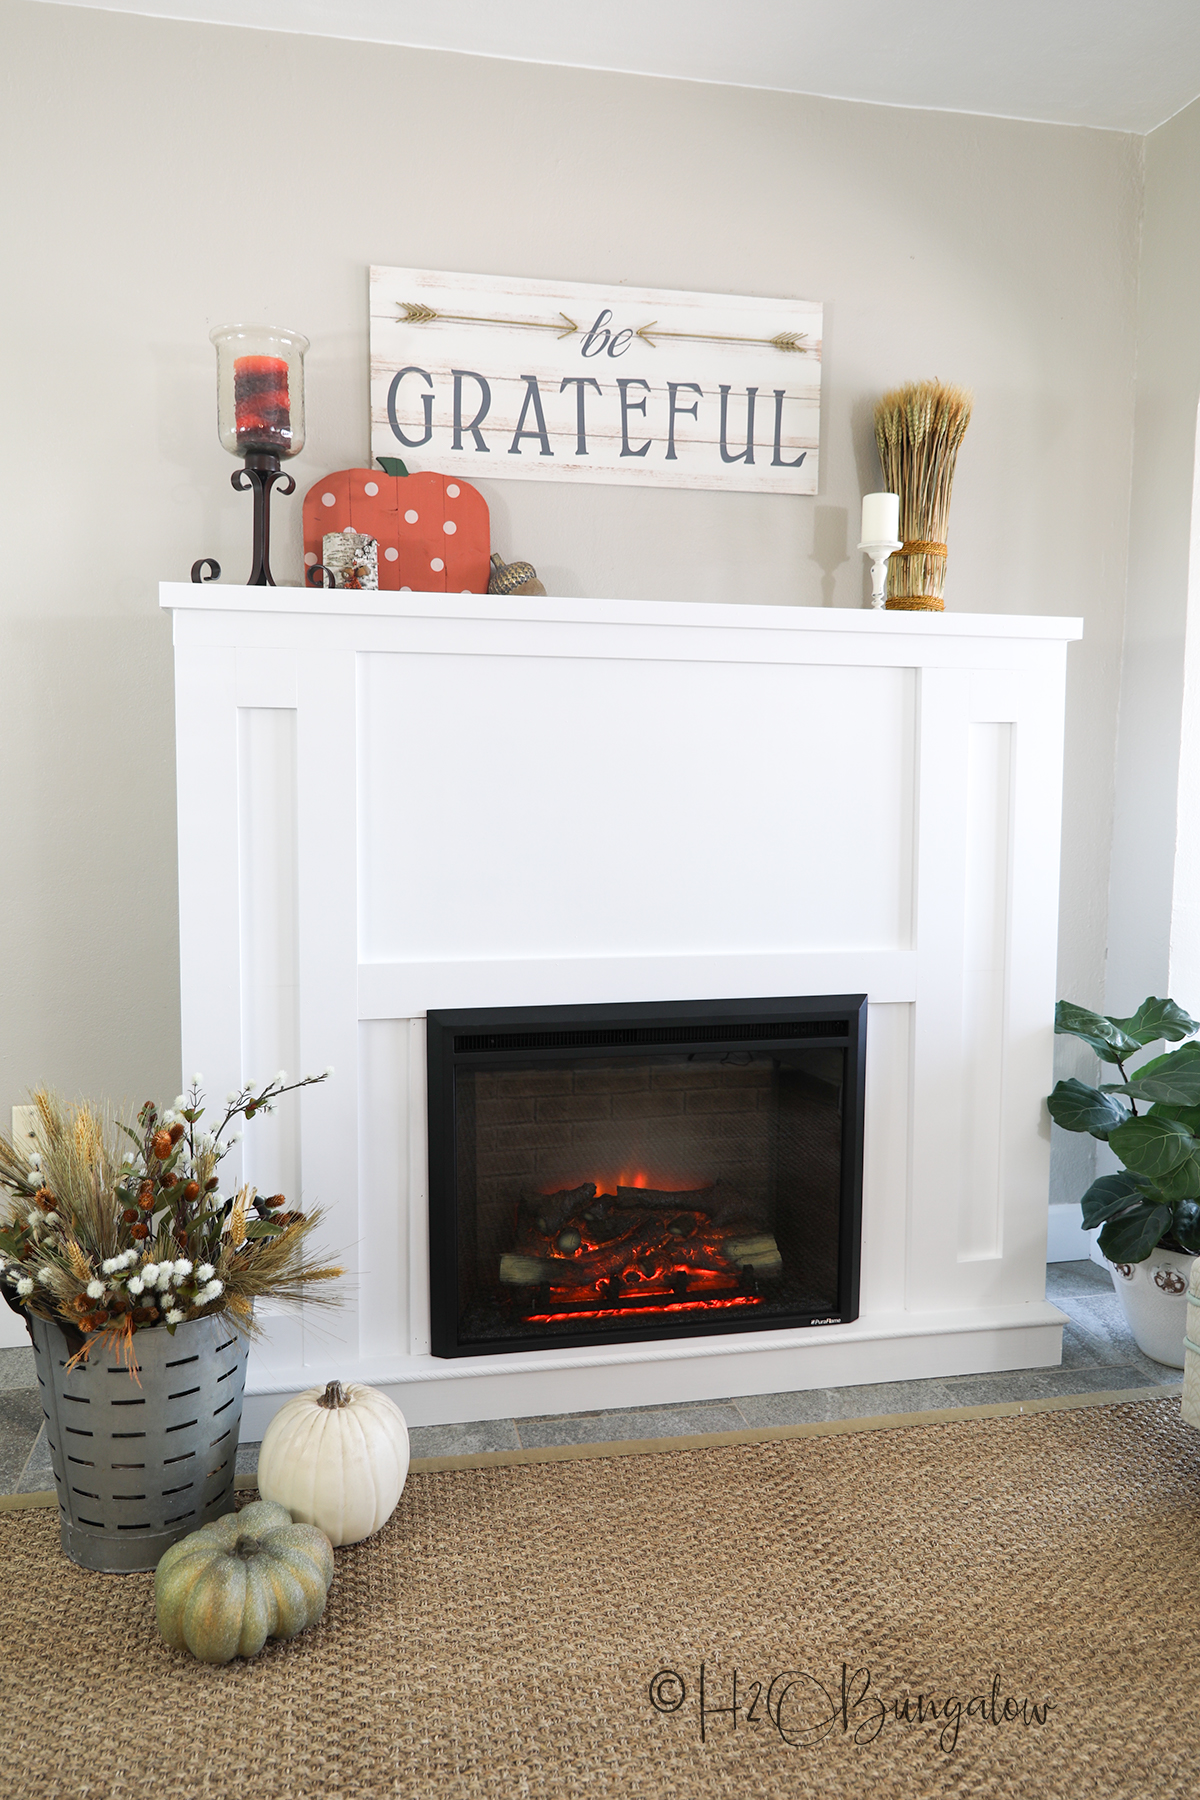 Build Your Own Fireplace Insert How To Build A Diy Fireplace With Electric Insert H2obungalow